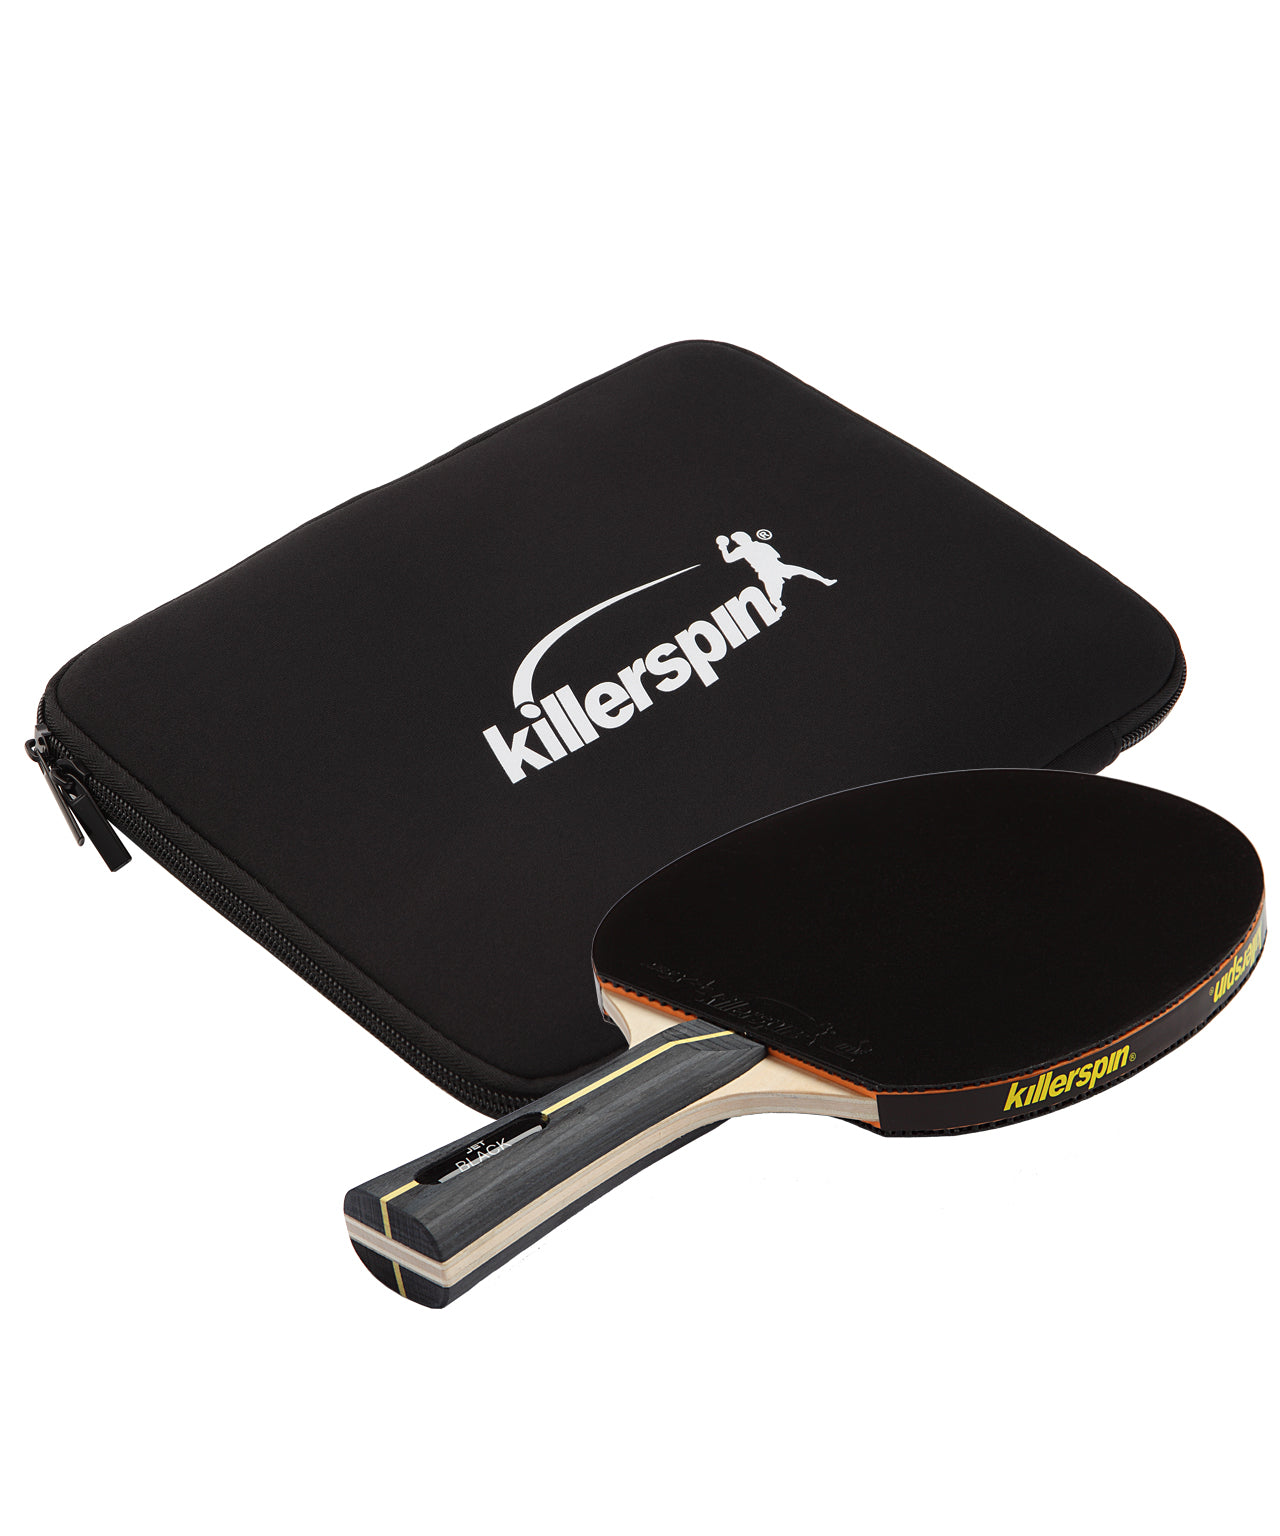 Killerspin Jet Black Combo Ping Pong Paddle Table Tennis Paddle Case